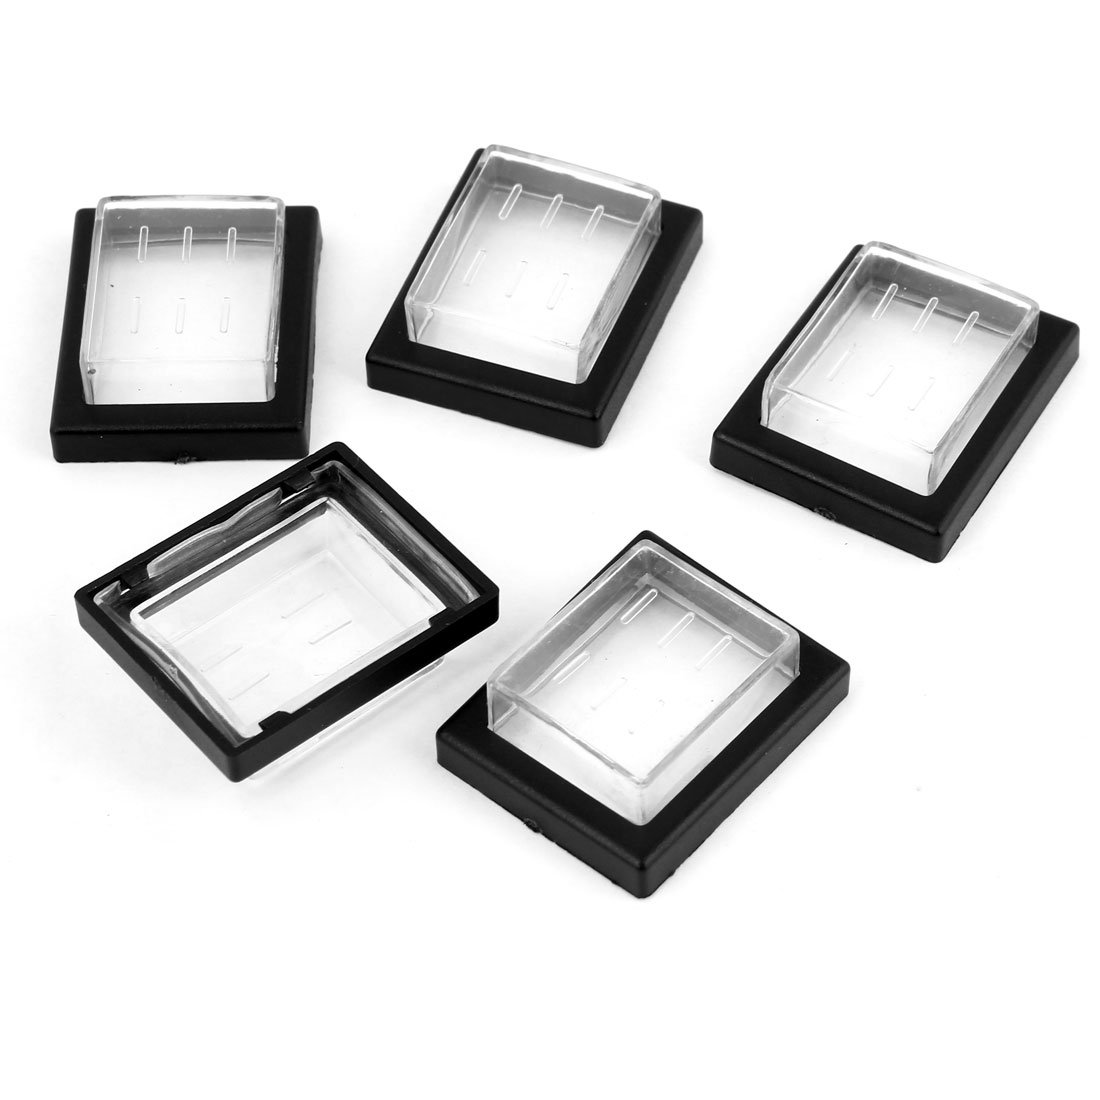 uxcell5 Pcs Rectangle Plastic Waterproof Anti-dust Switch Covers Protectors a13112200ux0221